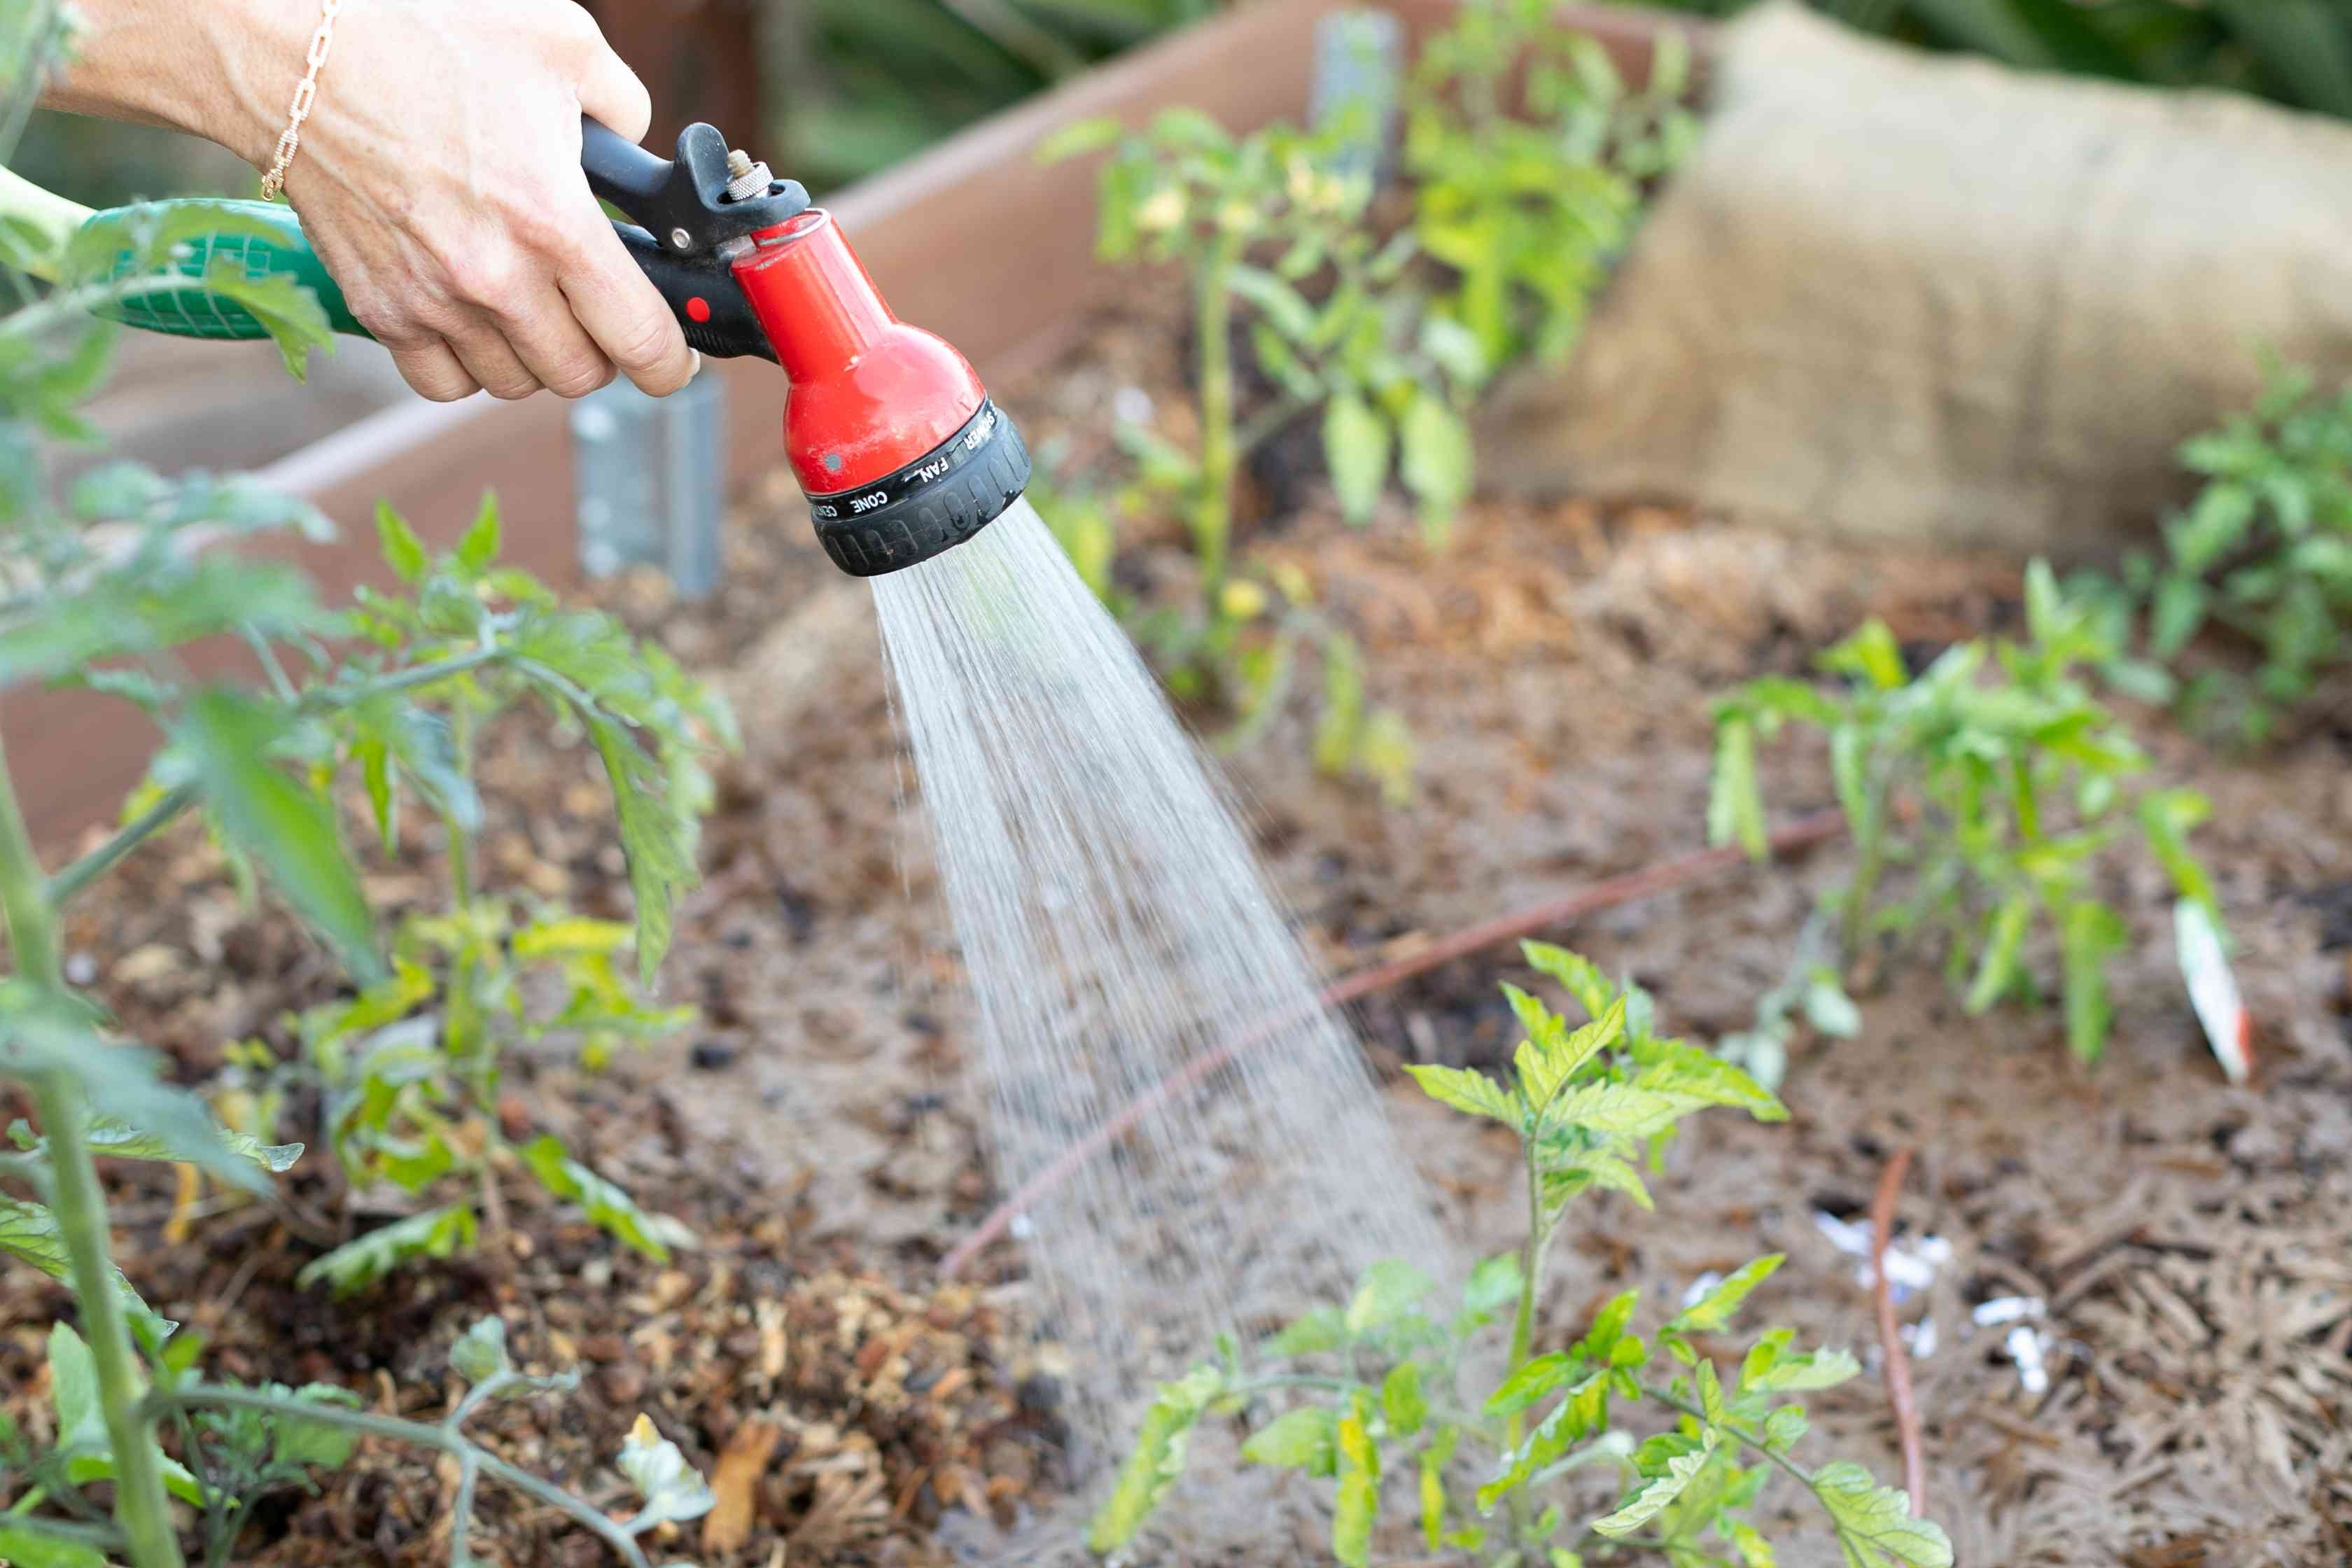 Vegetable garden being watered with red garden hose in the morning